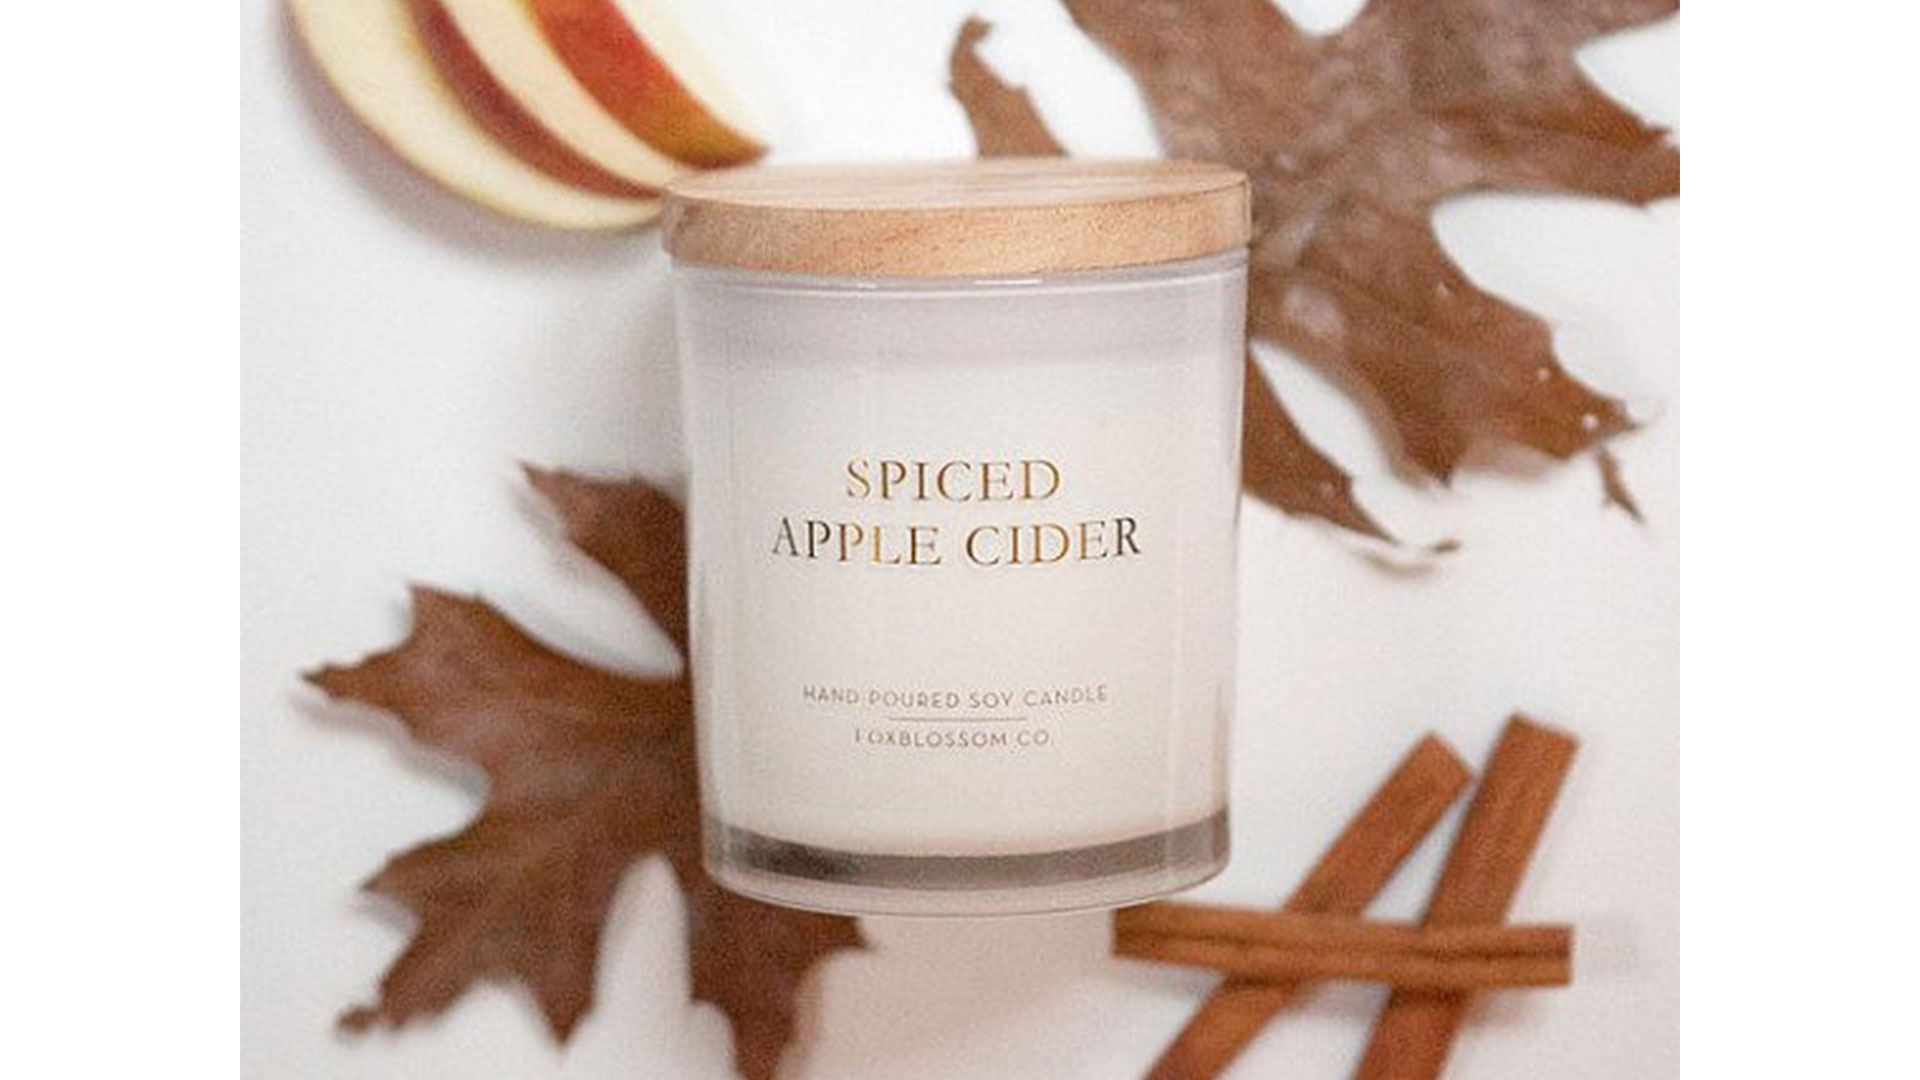 RX_1701 CandleGG Spiced Apple Cider Candle